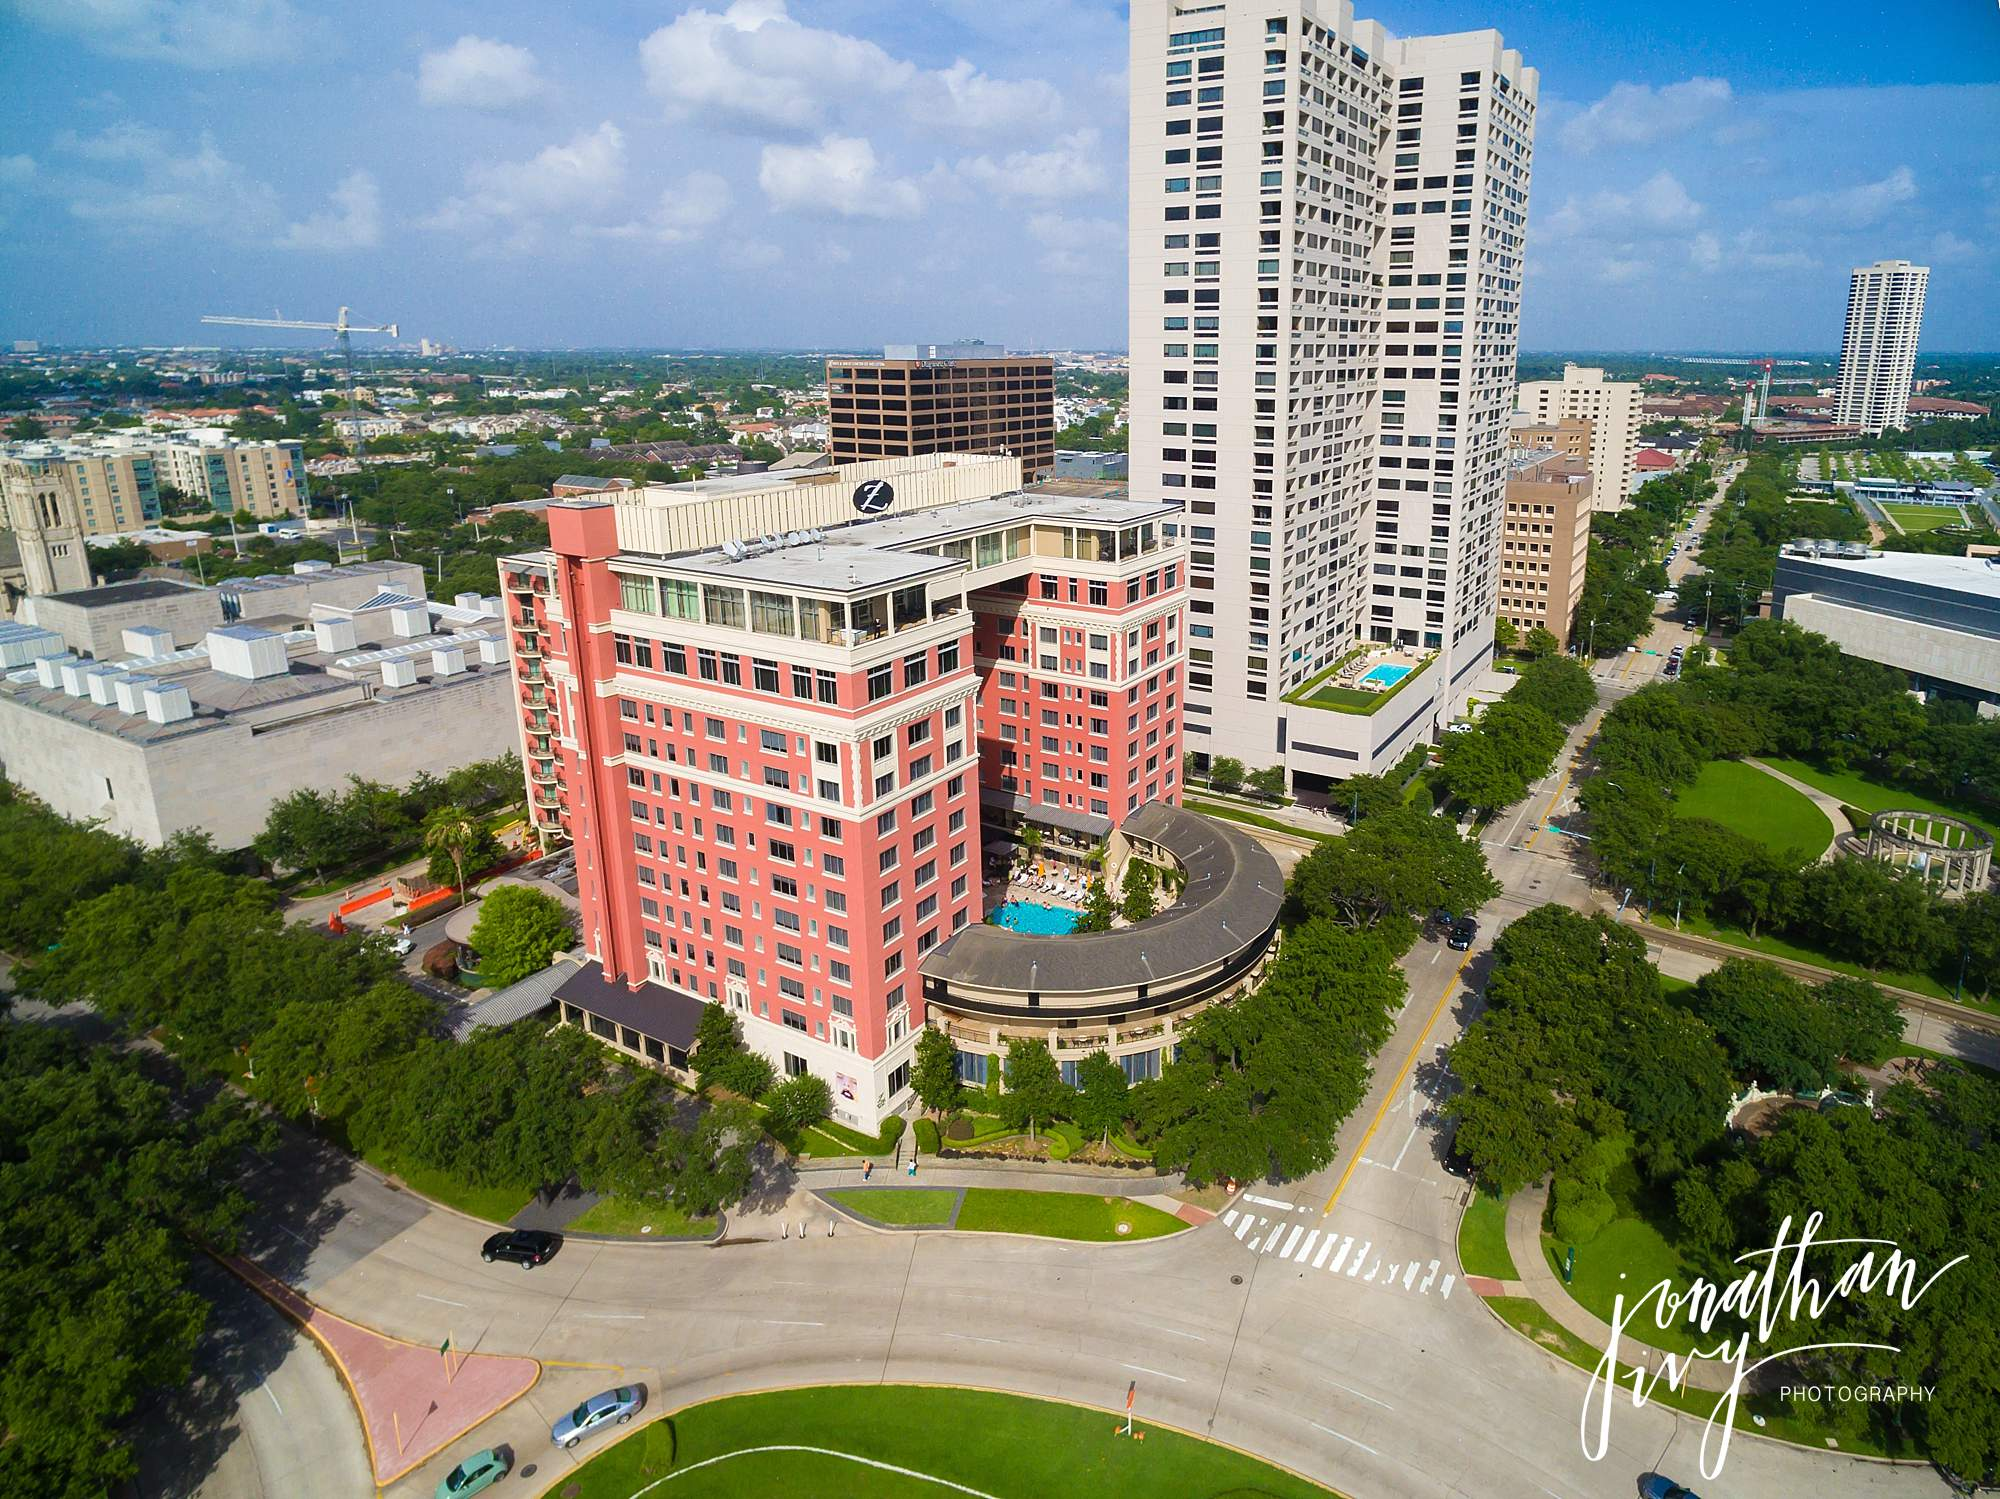 Hotel Zaza Houston Aerial Photo Wedding Bride & Groom